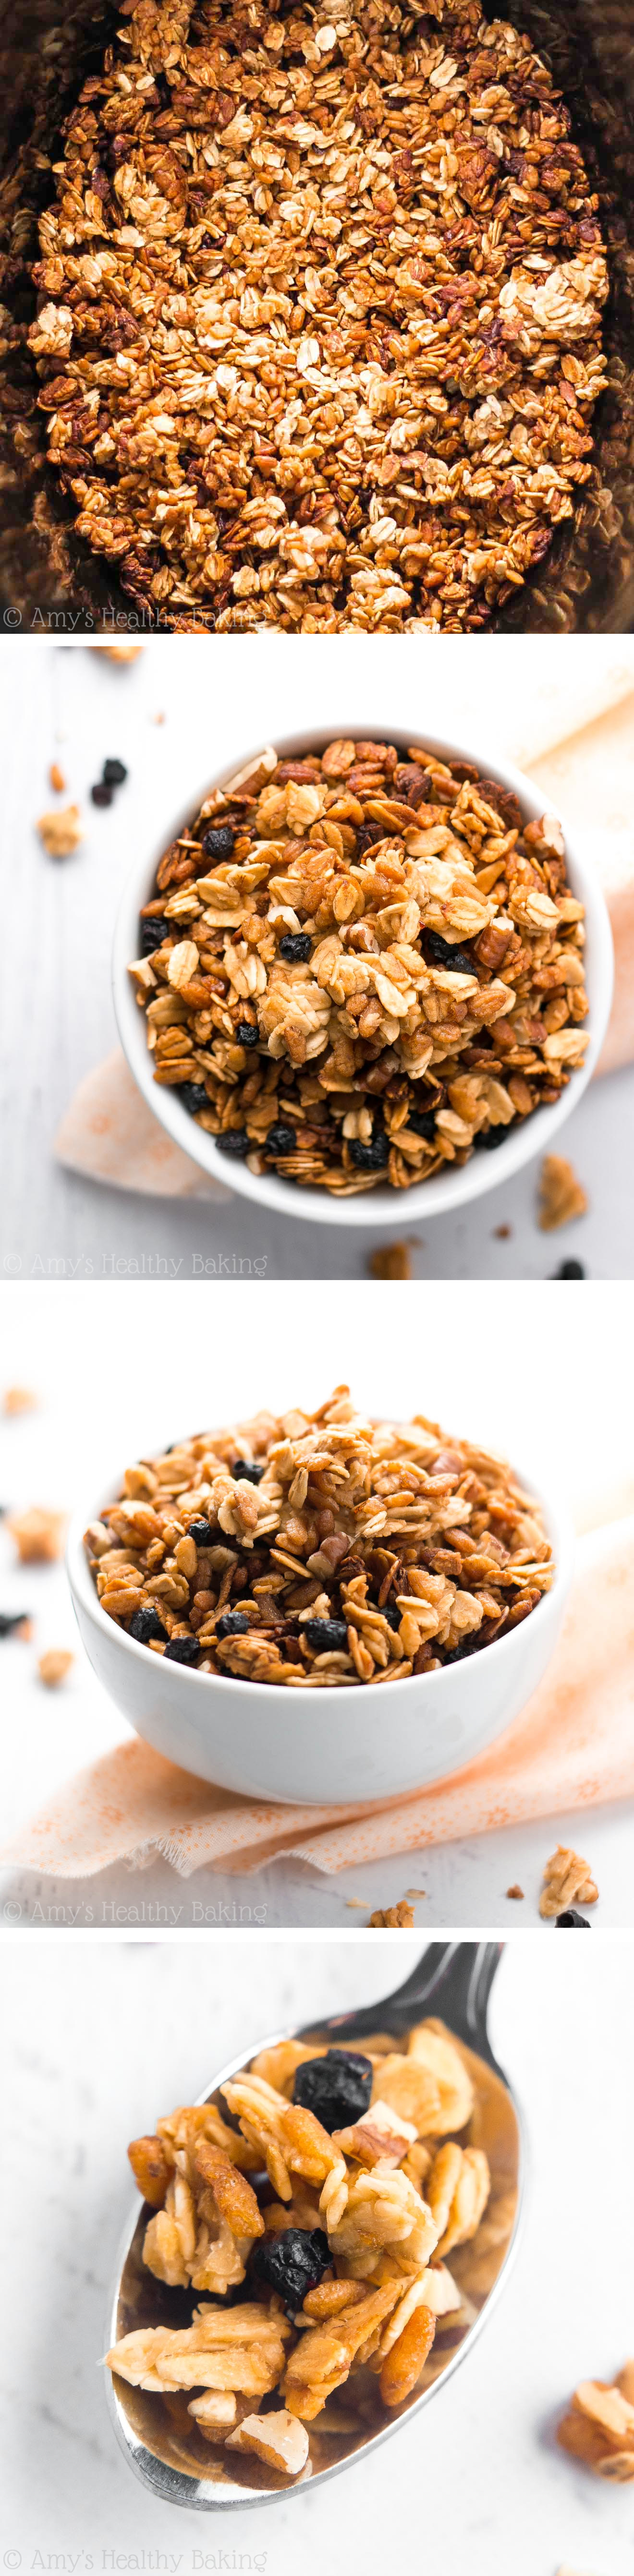 Learn how to make granola in the crockpot with this GENIUS trick! So easy, so crunchy, so good!!